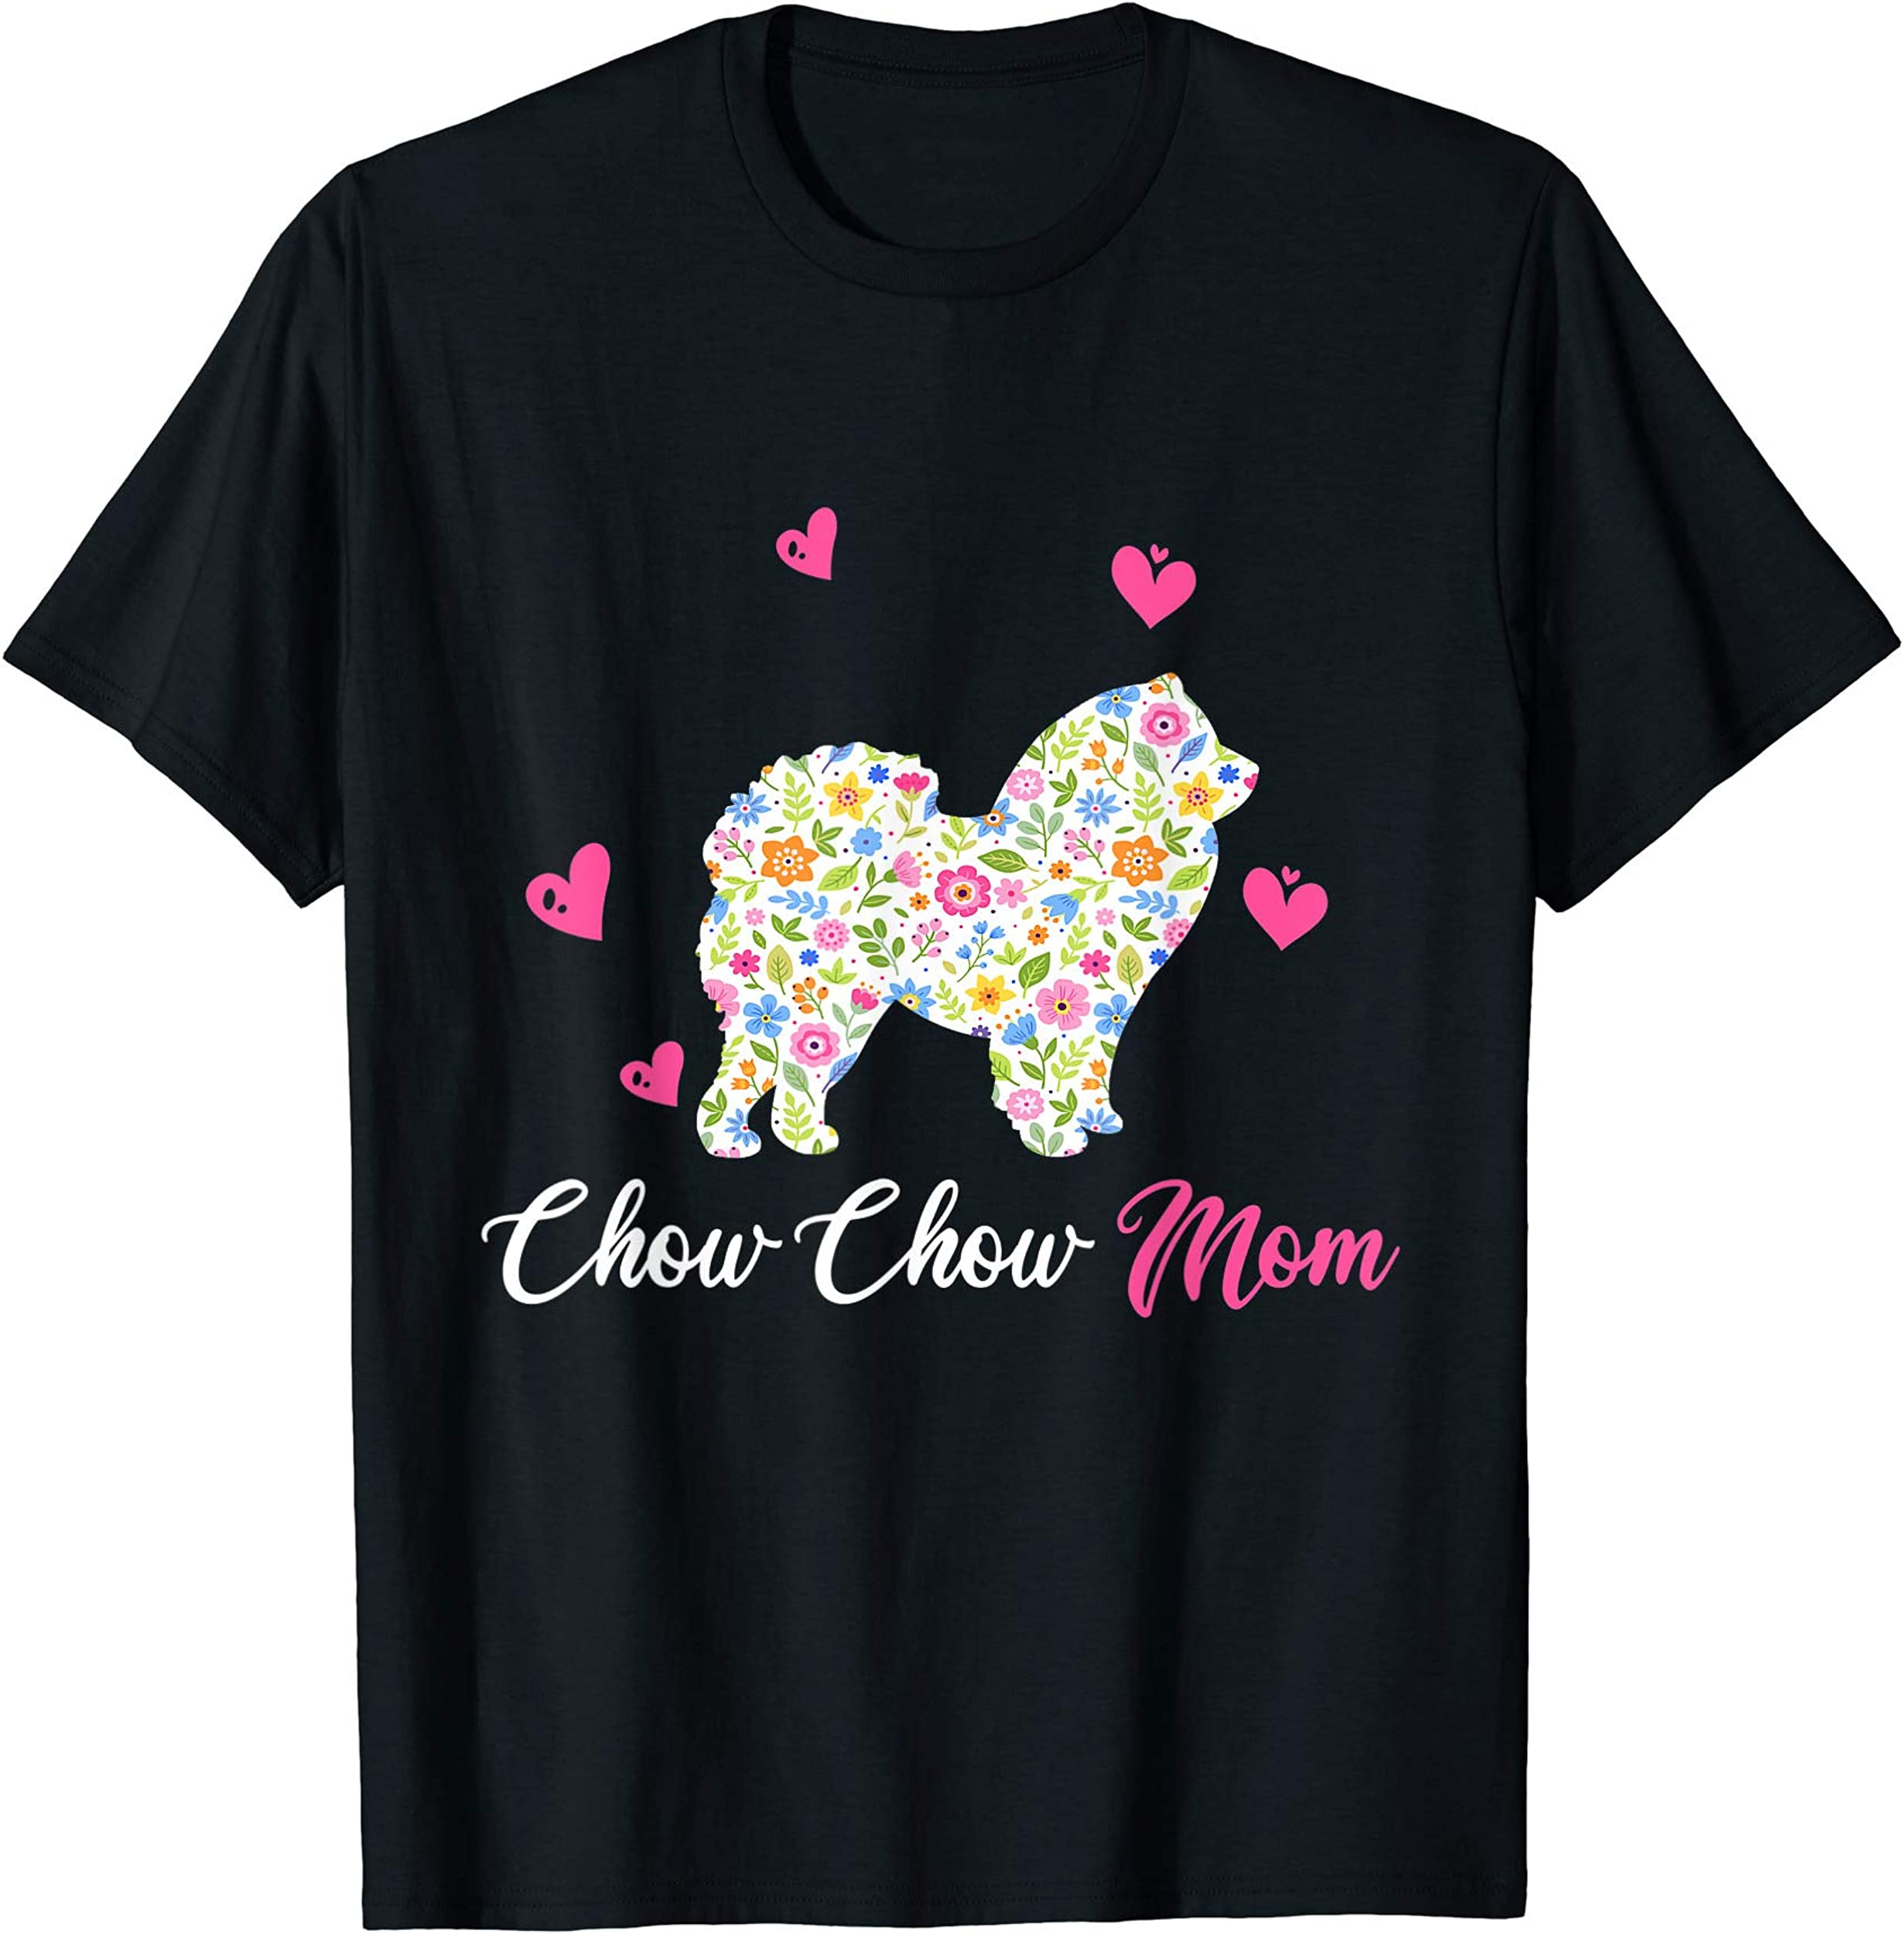 Chow Chow Mom Shirt For Dog Lovers Mothers Day